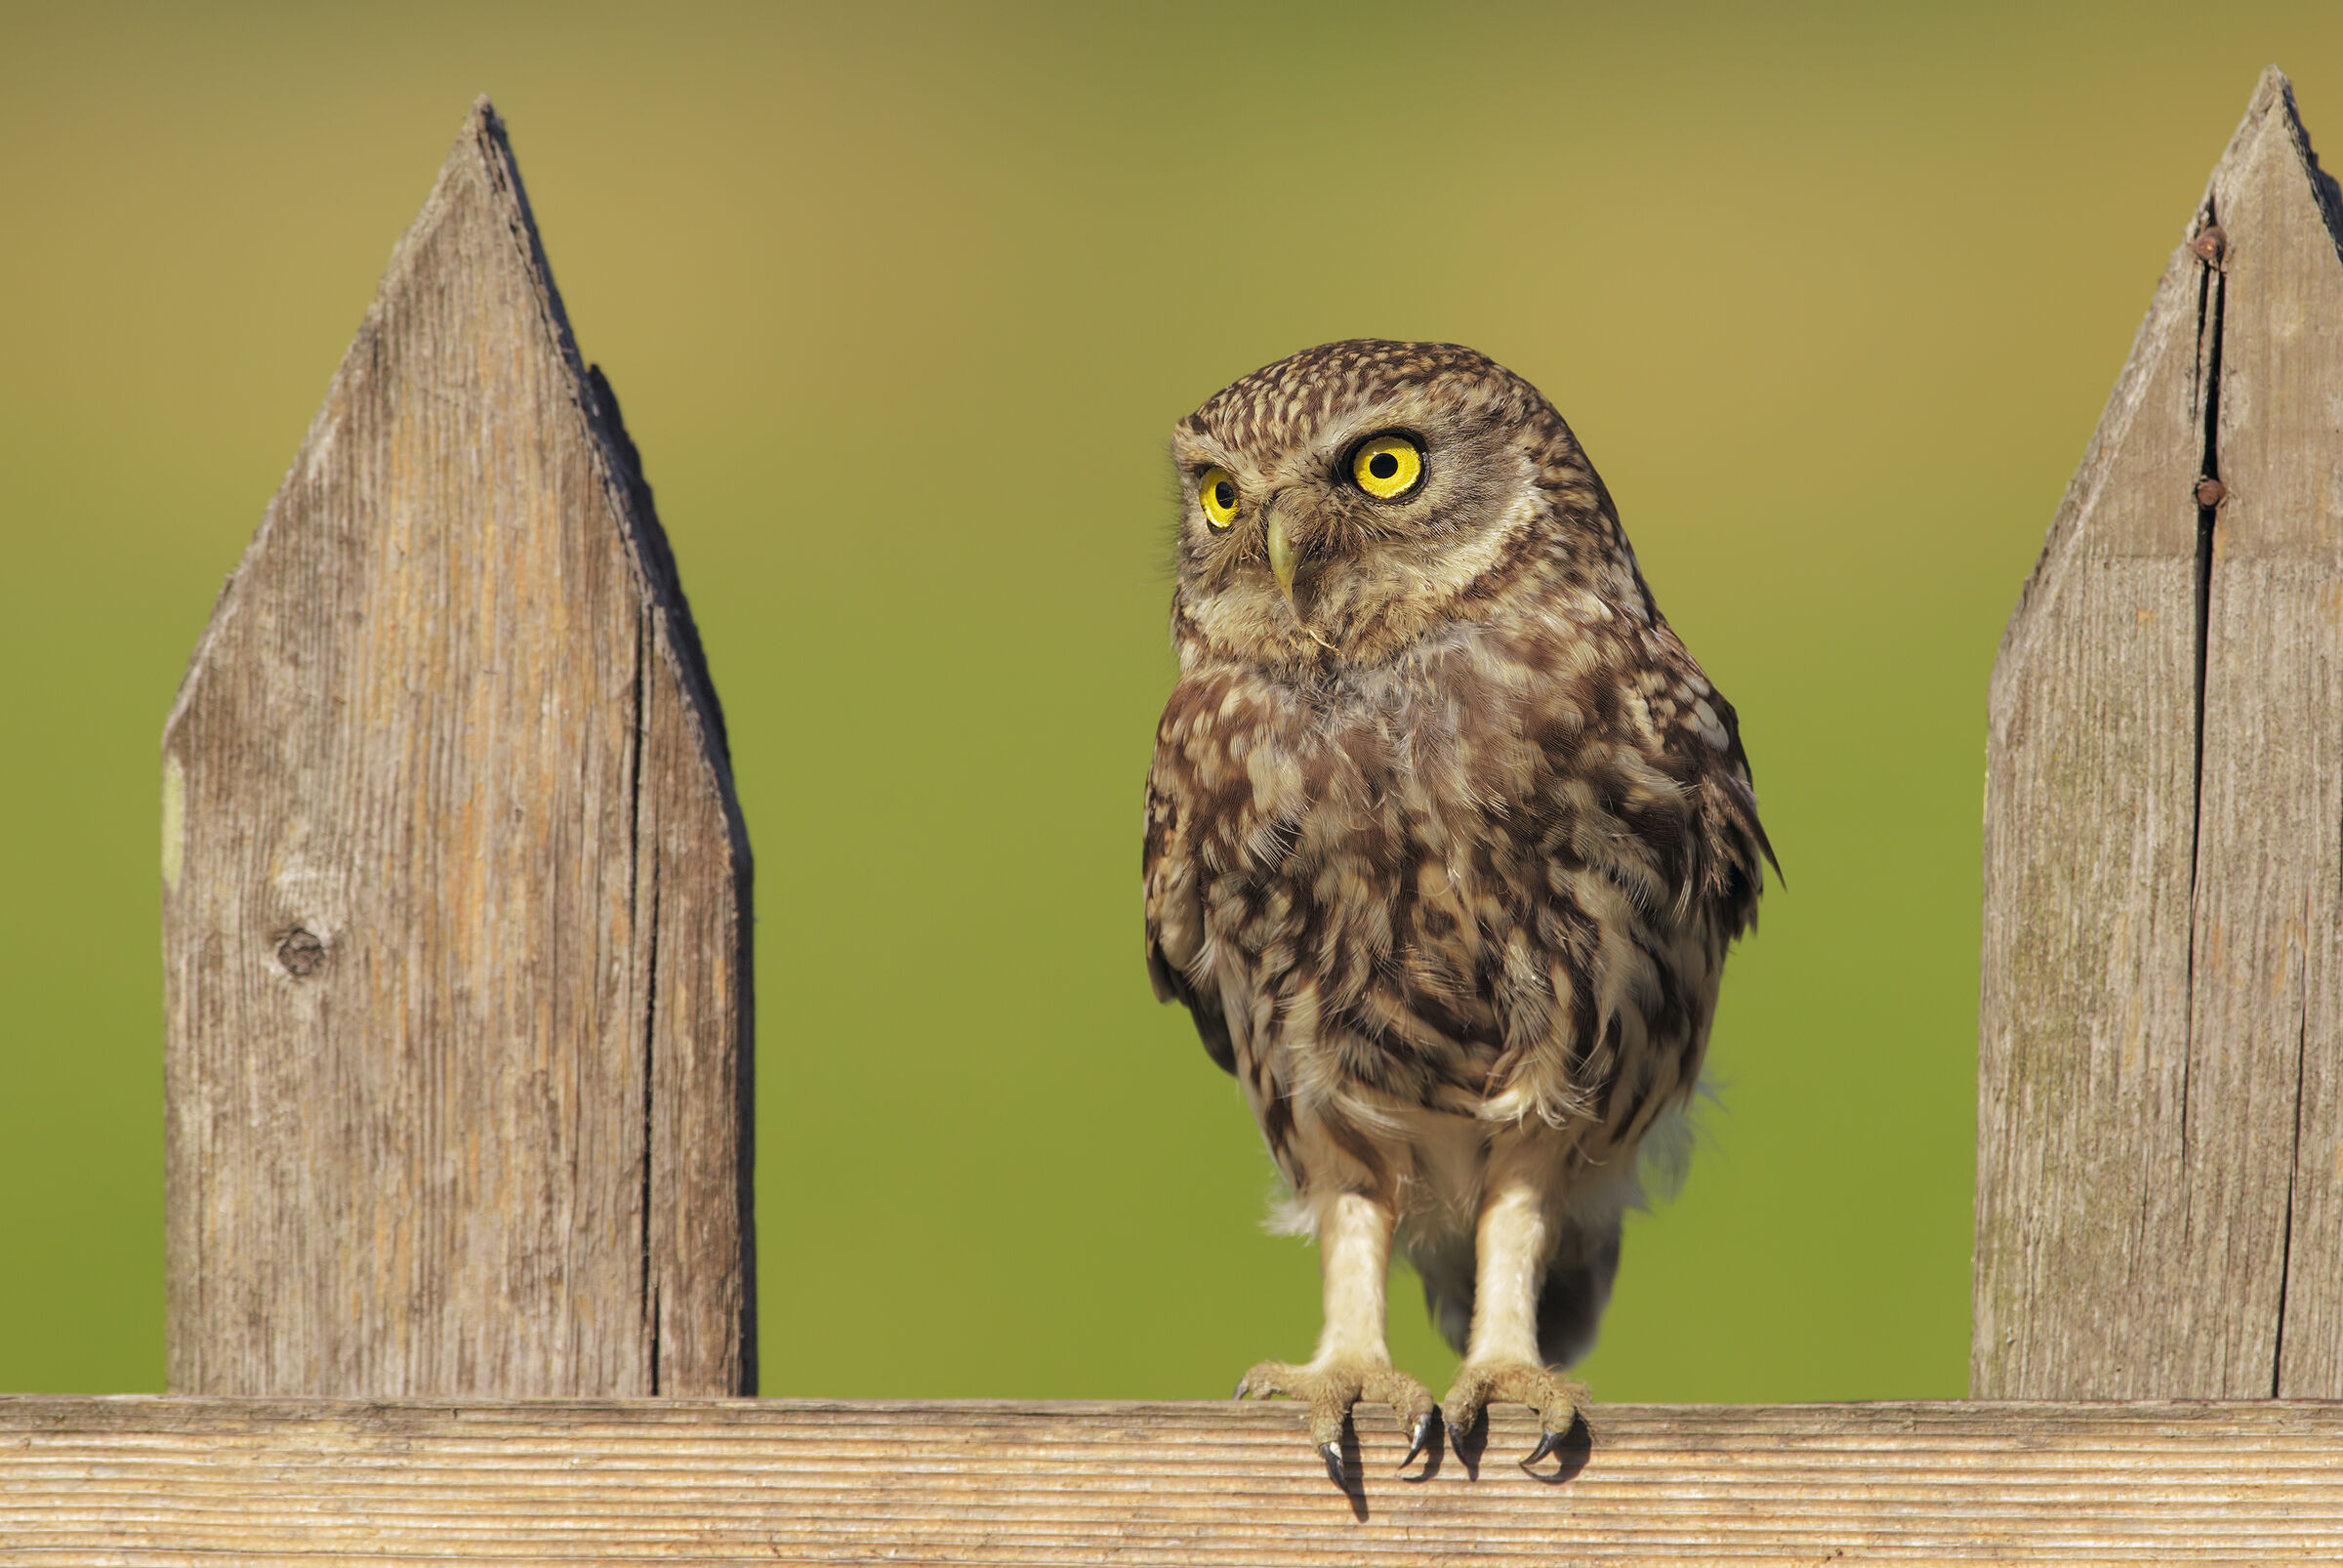 The Fence and the Owl 2.0...